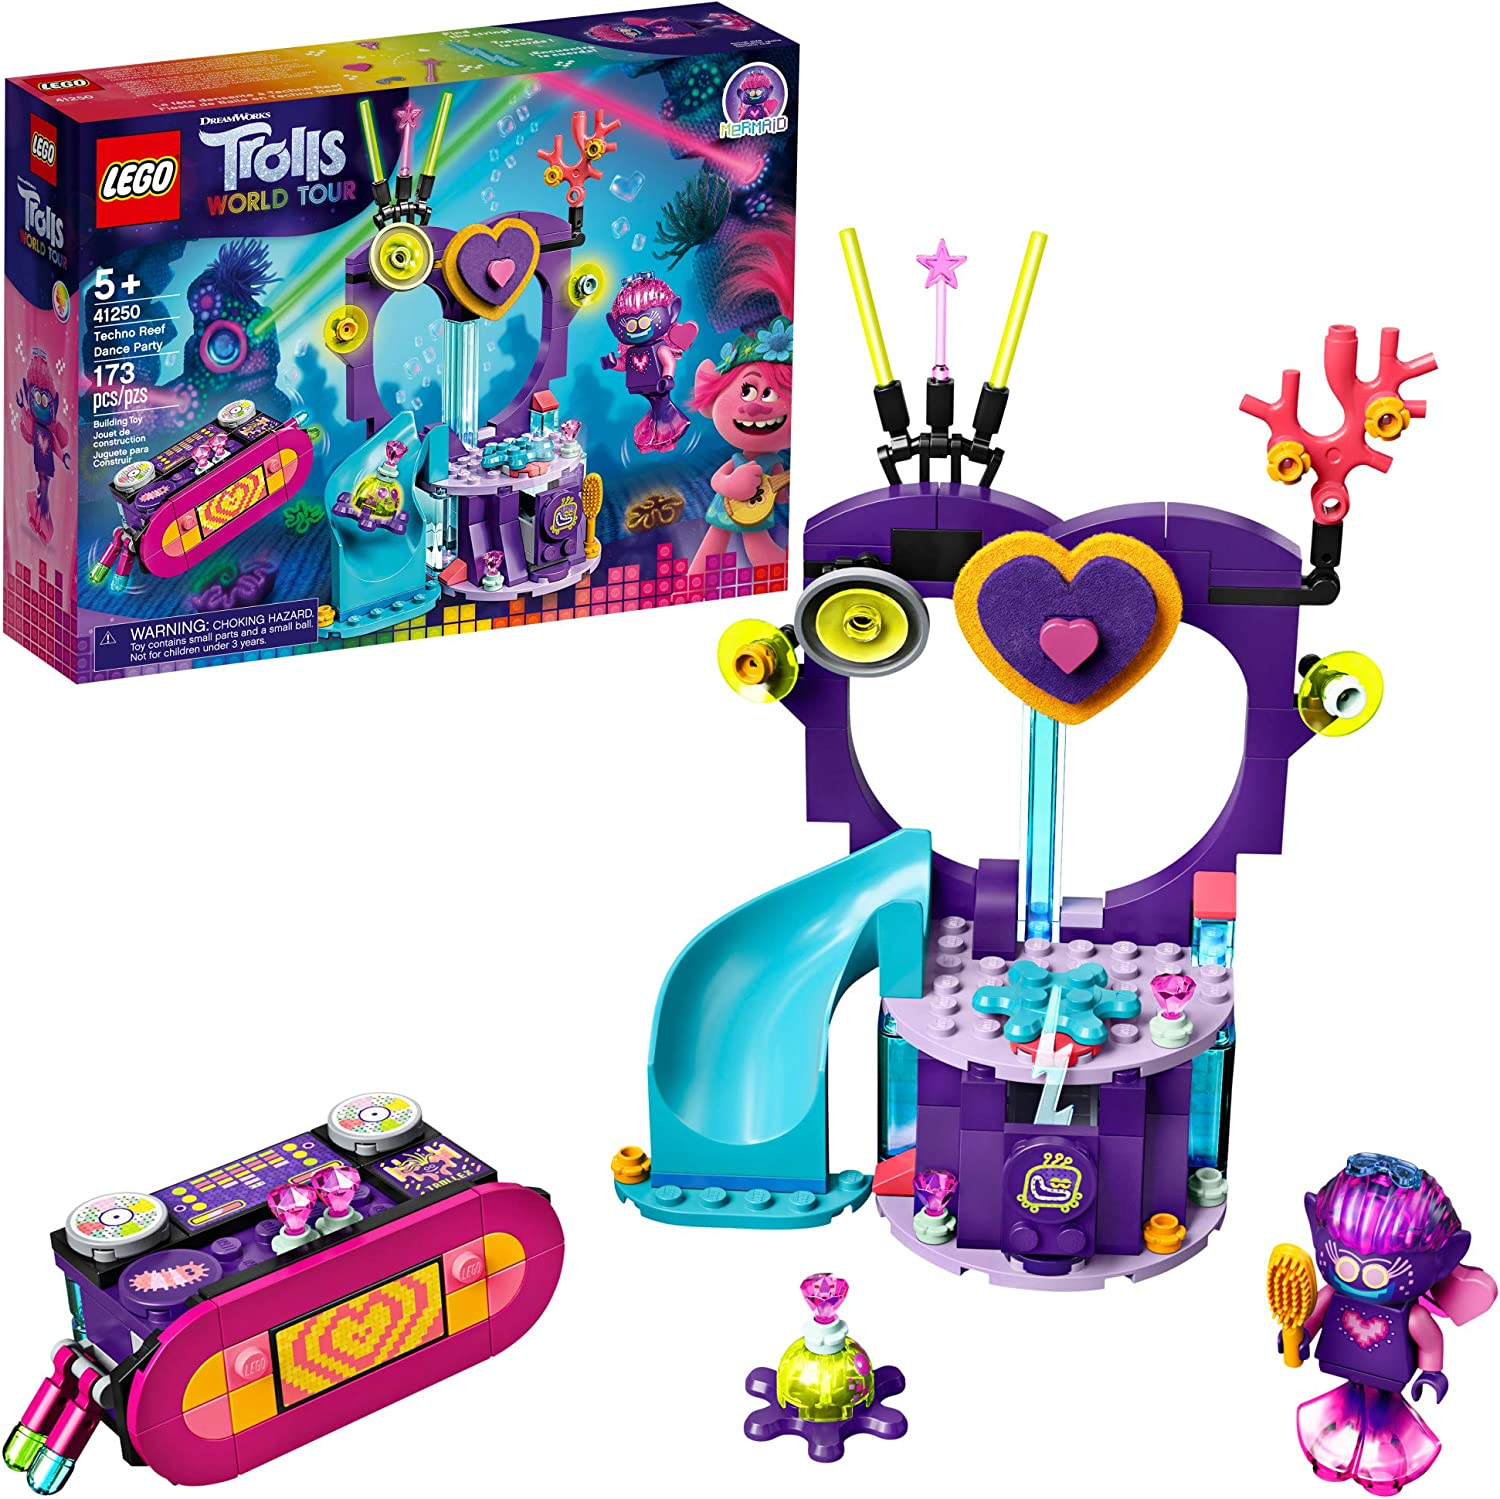 Trolls World Tour Techno Reef Dance Party 41250 LEGO